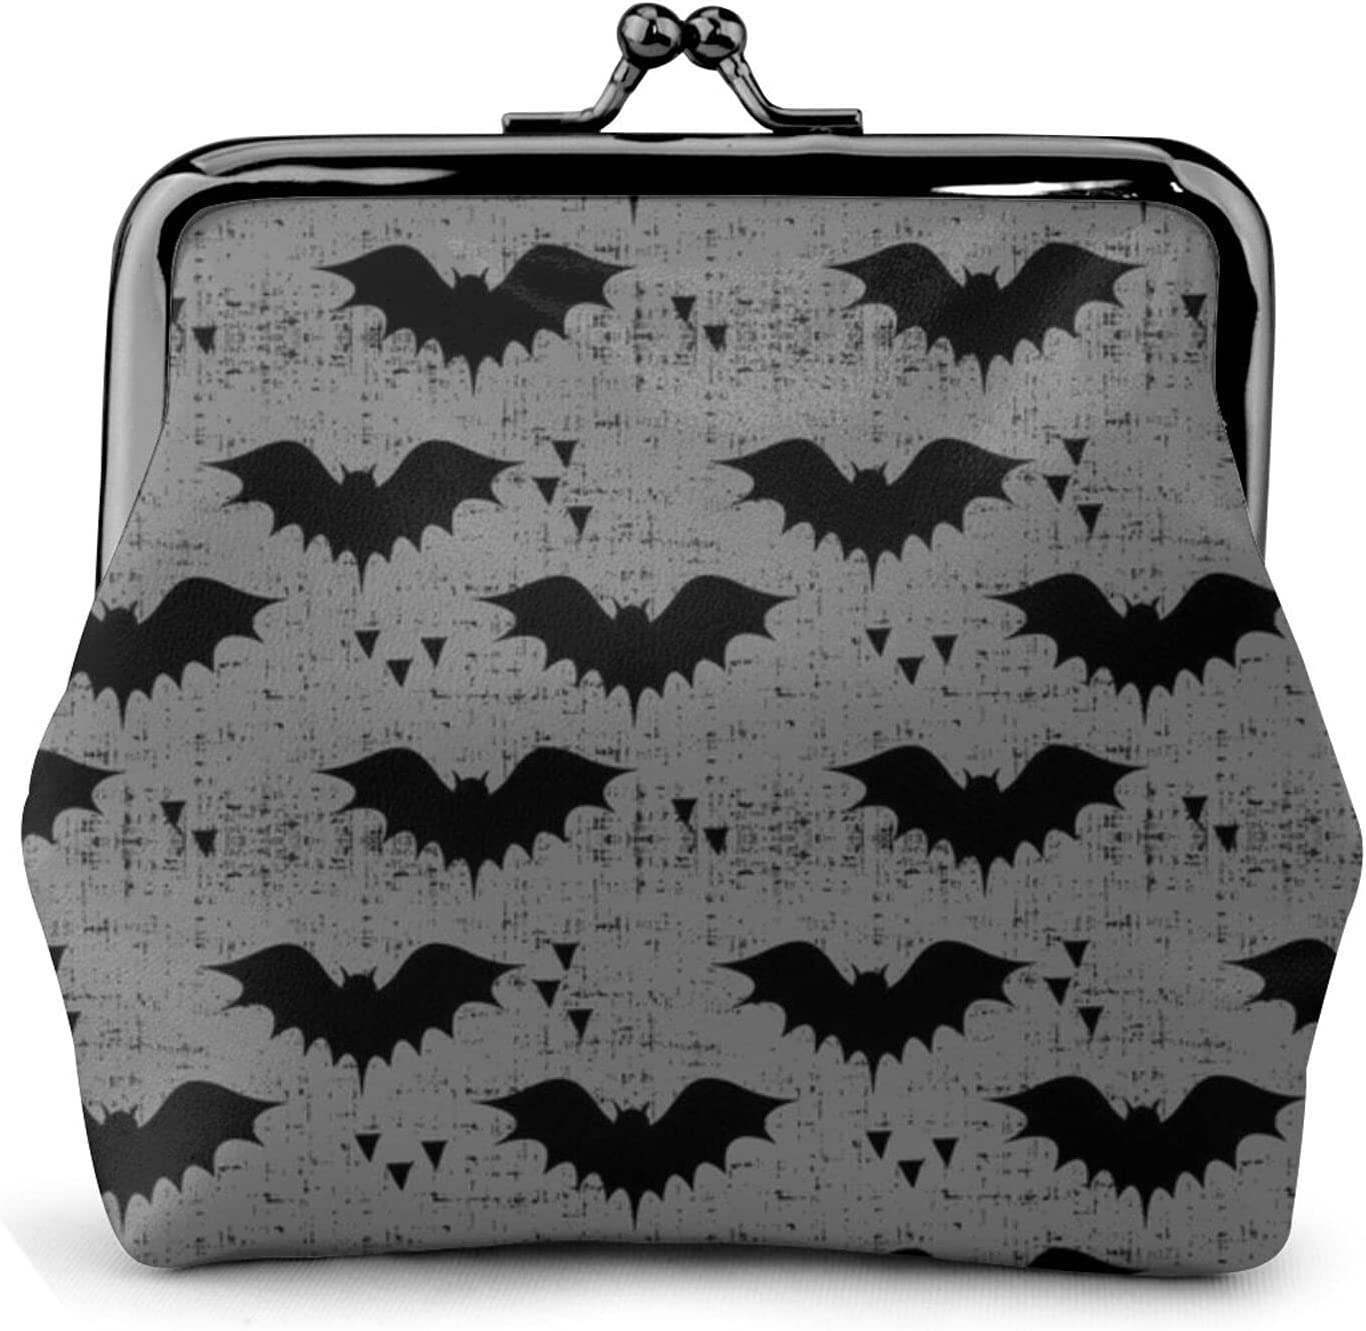 Bats Grey With 272 Coin Purse Retro Money Pouch with Kiss-lock Buckle Small Wallet for Women and Girls